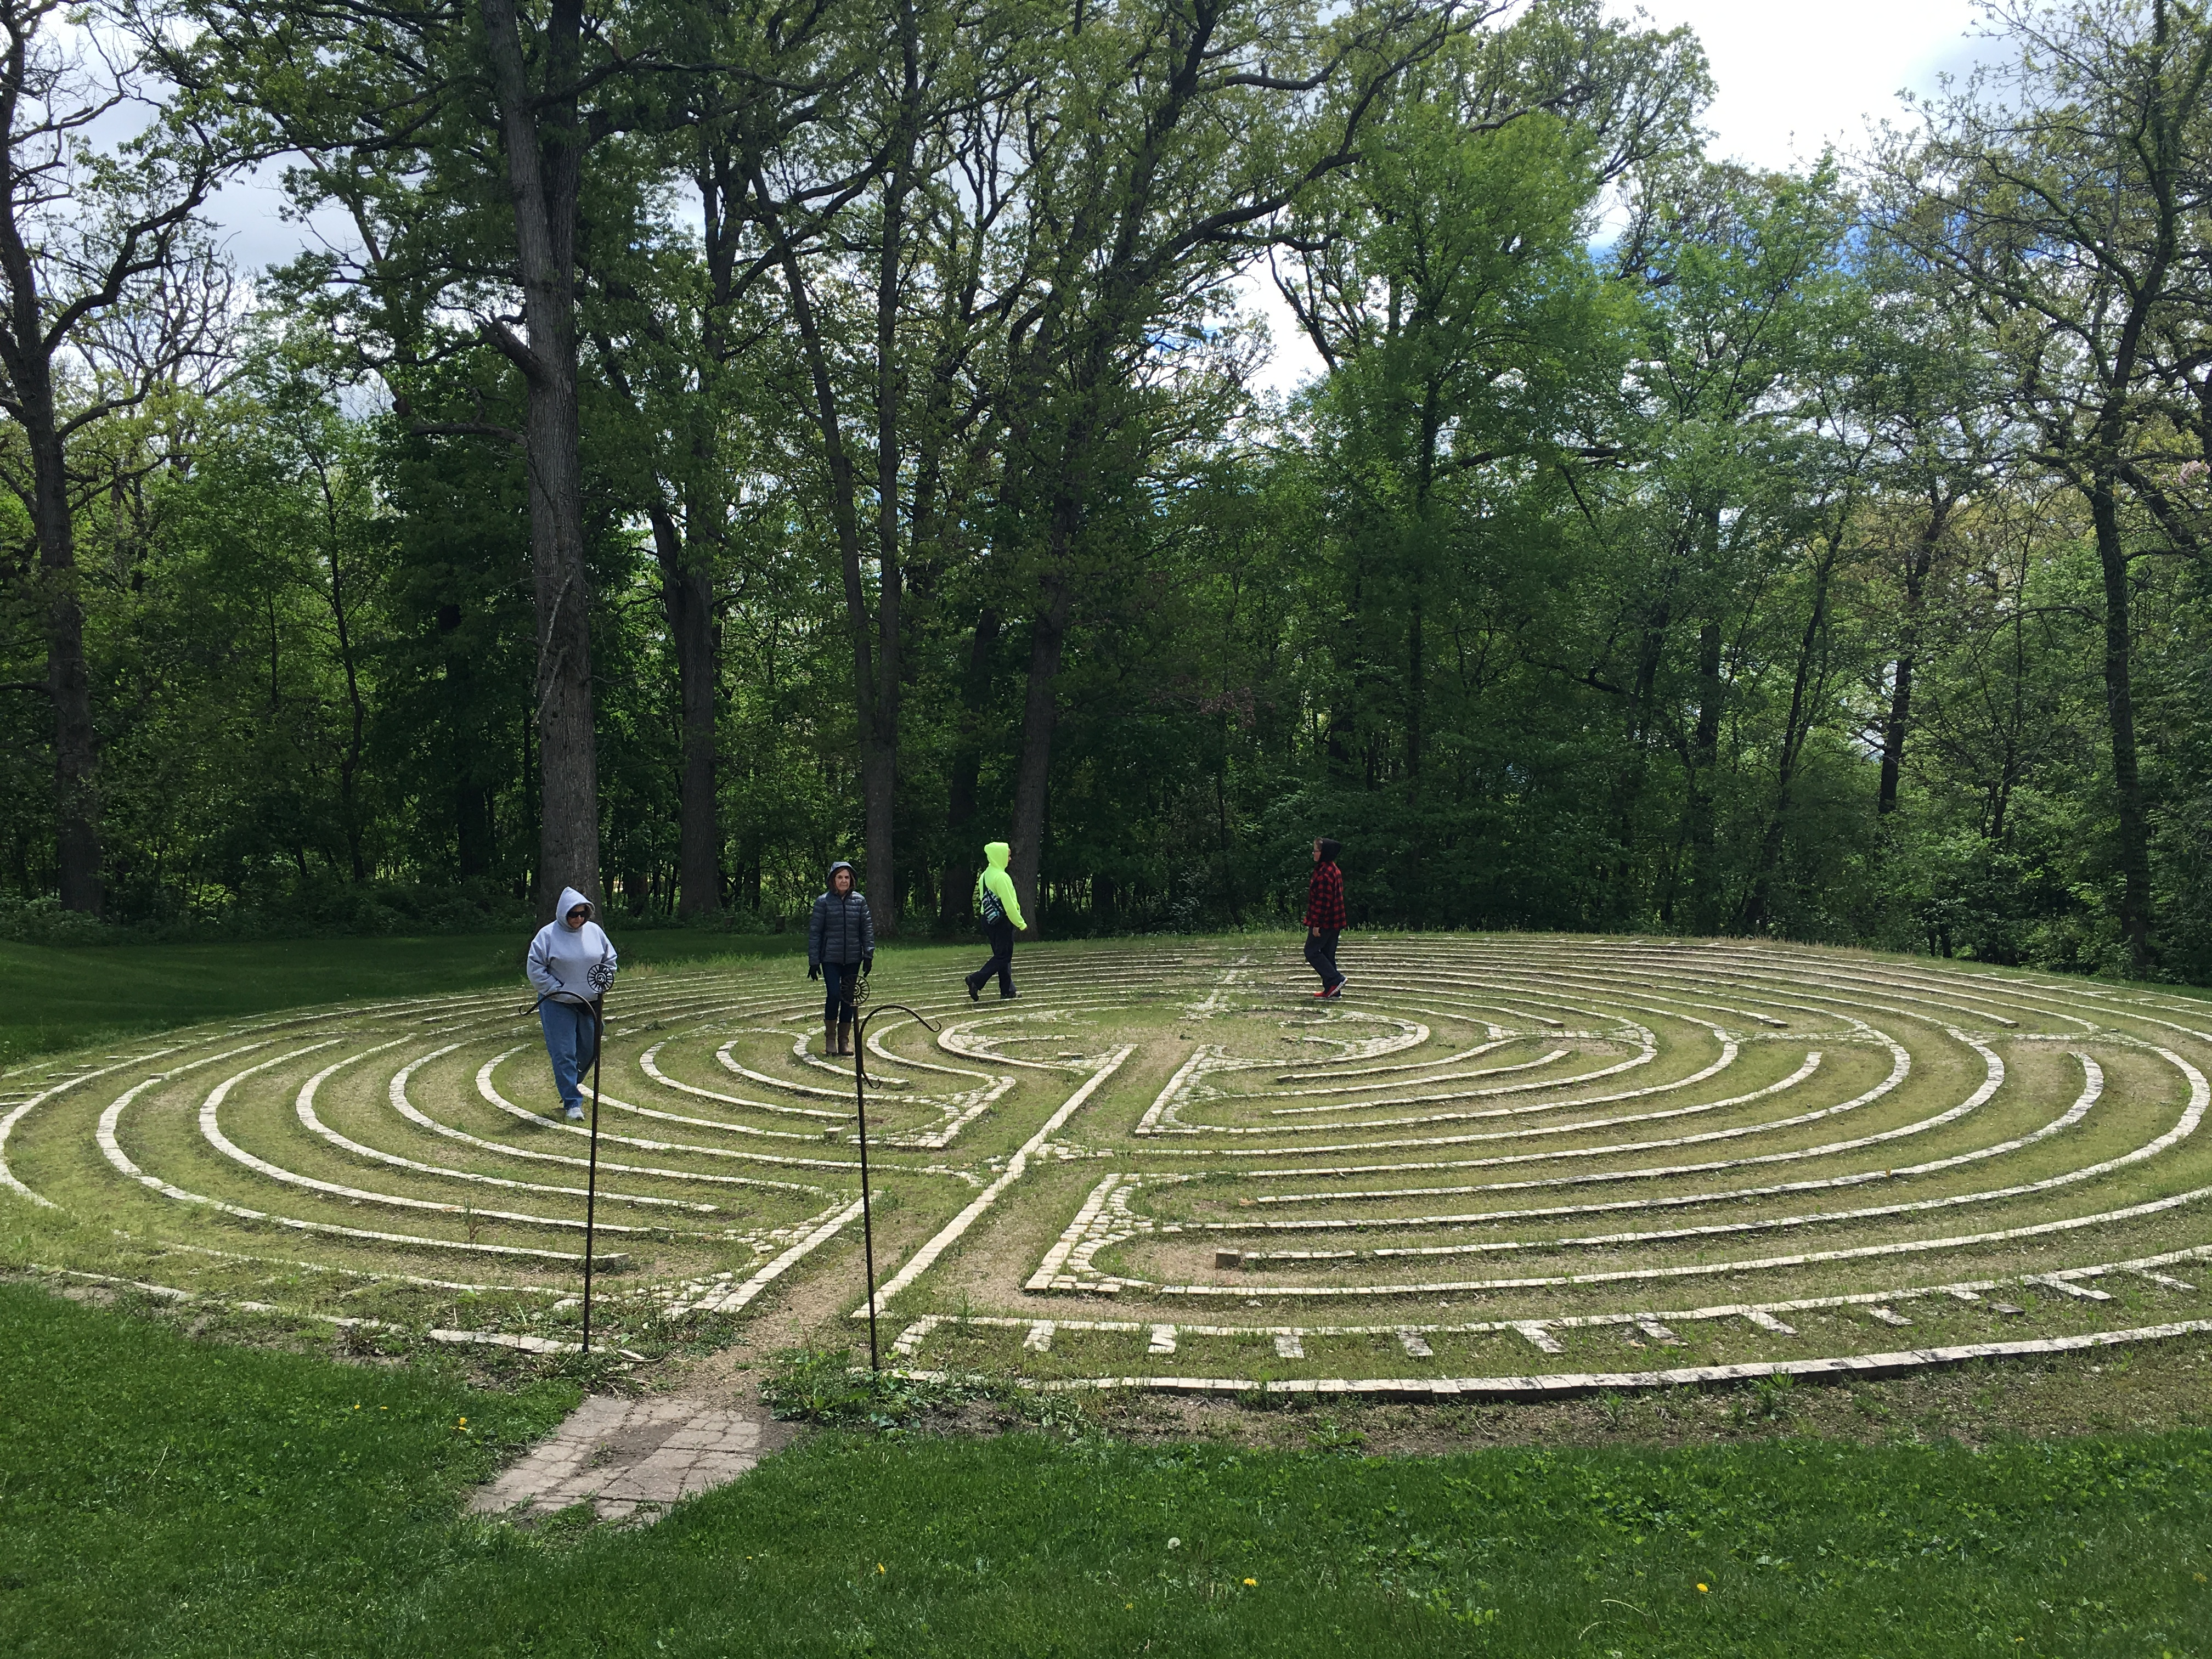 Walking the outdoor labyrinth